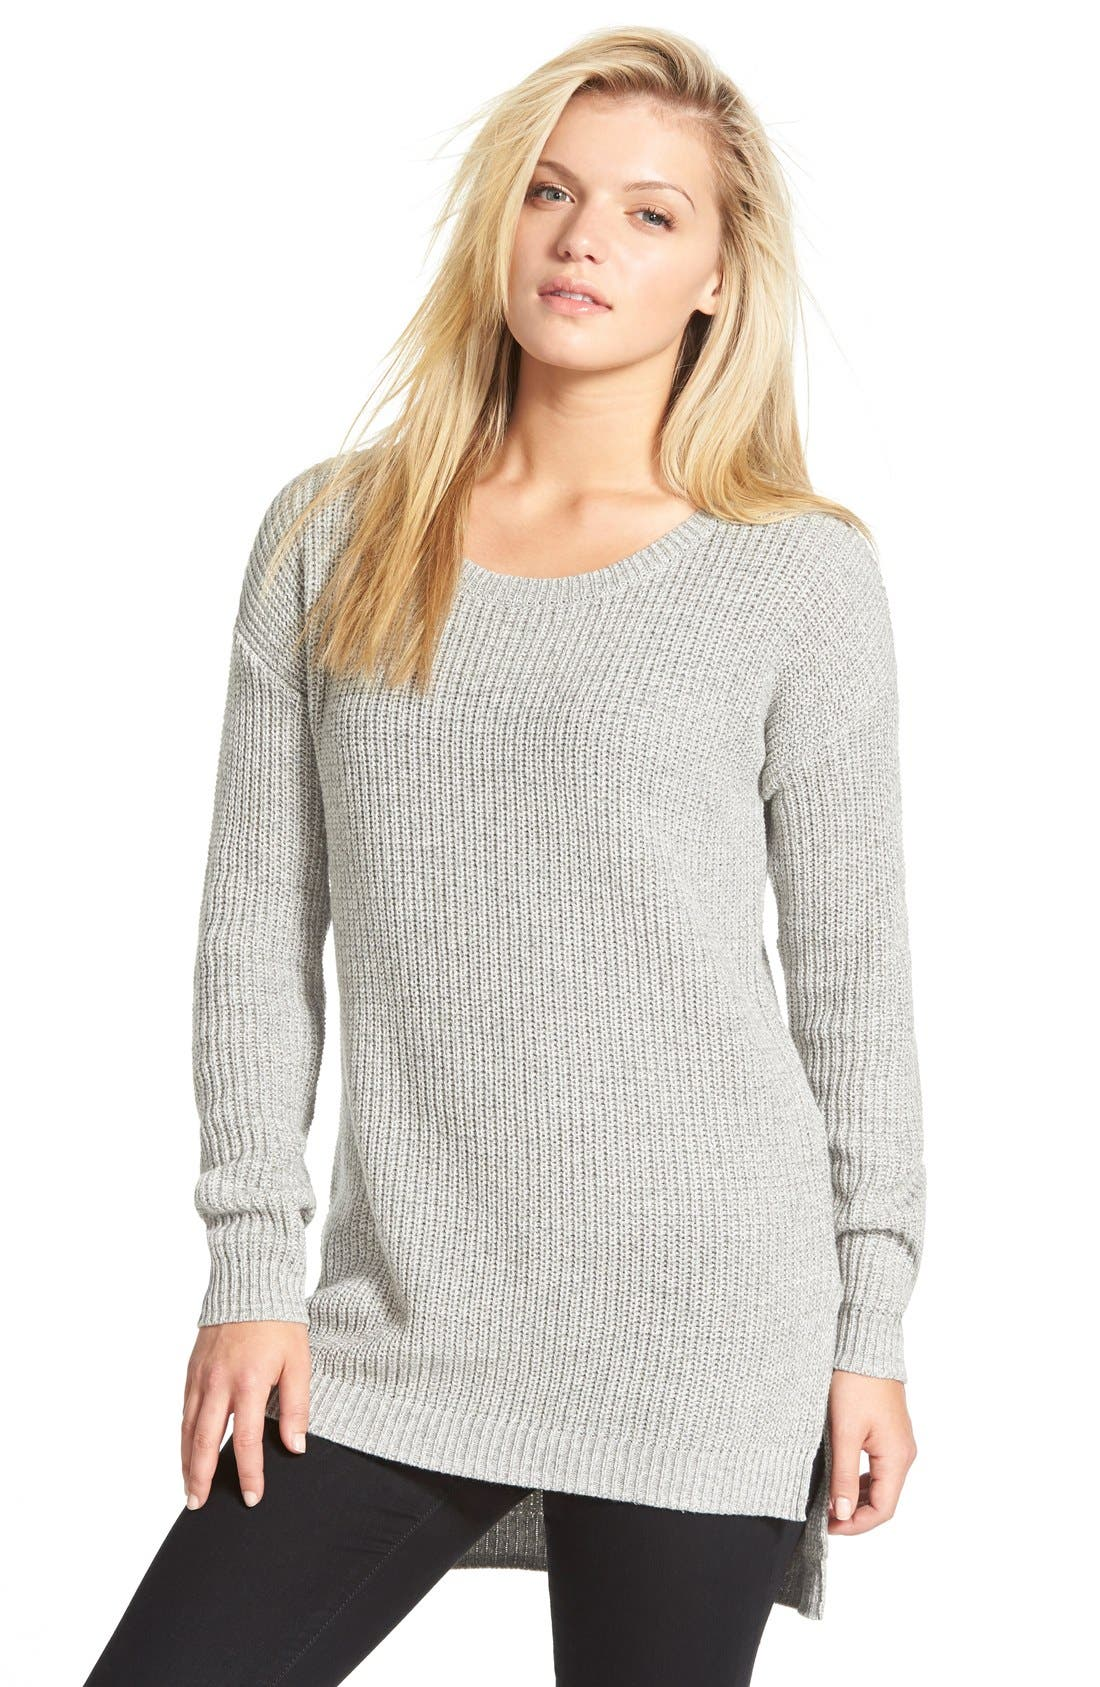 Alternate Image 1 Selected - BP. Textured Knit Pullover